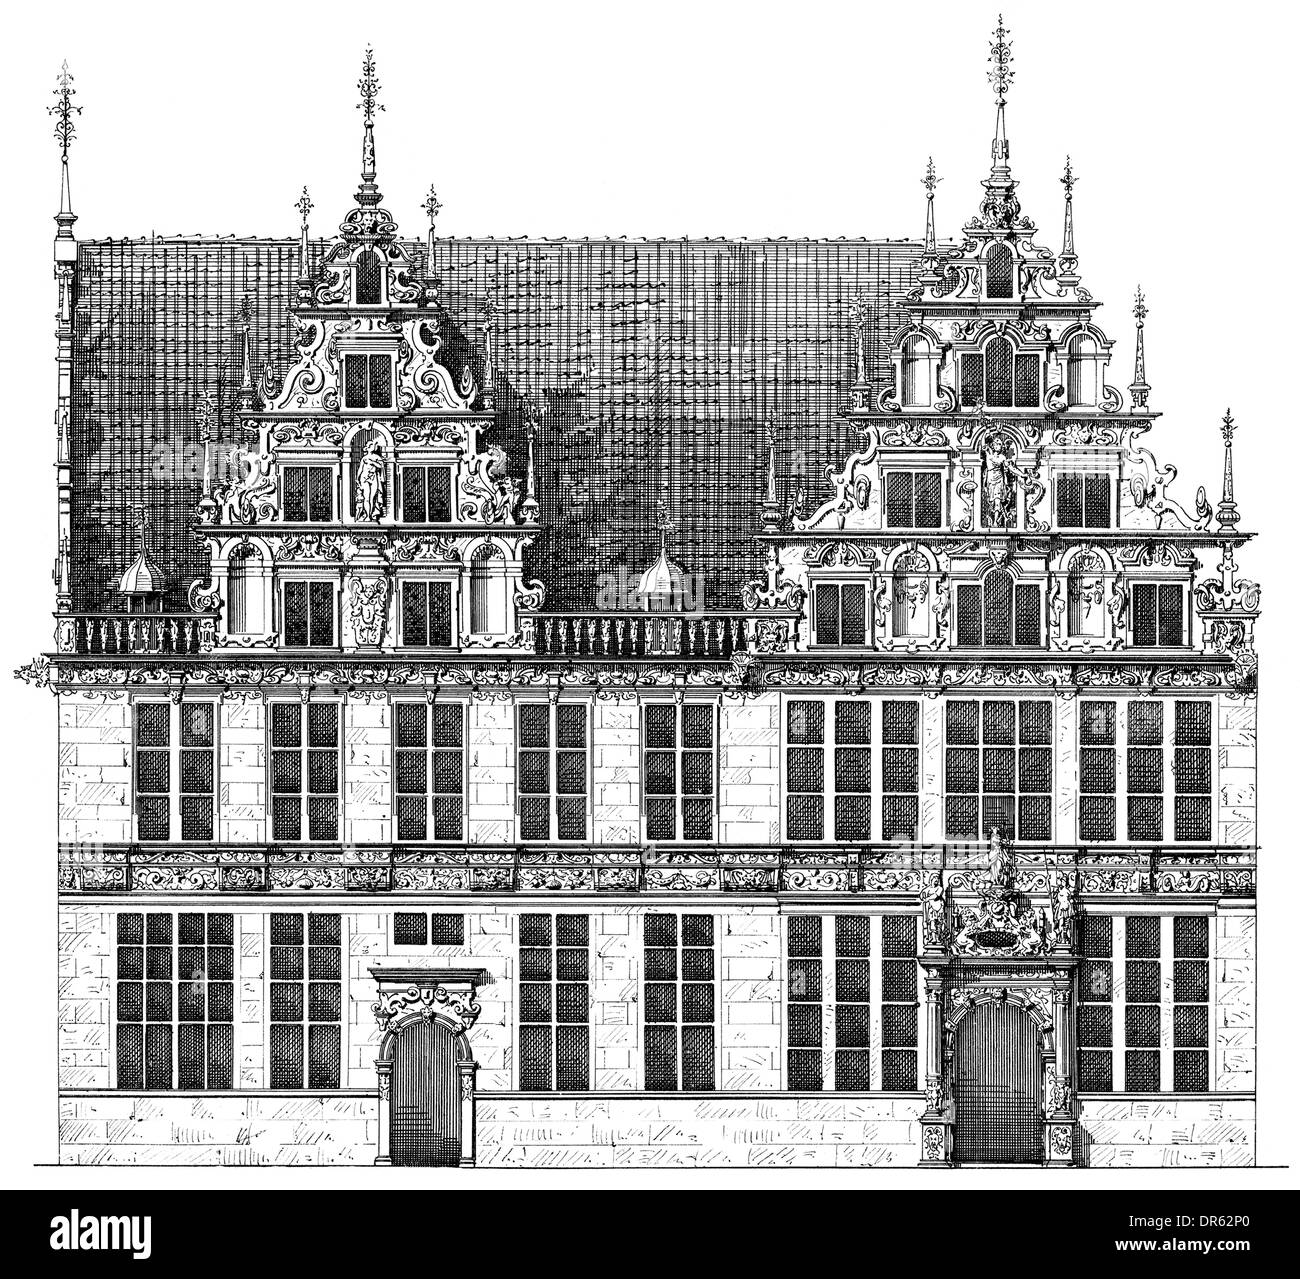 German Renaissance Style 17th Century Gewerbehaus Building In Bremen Germany